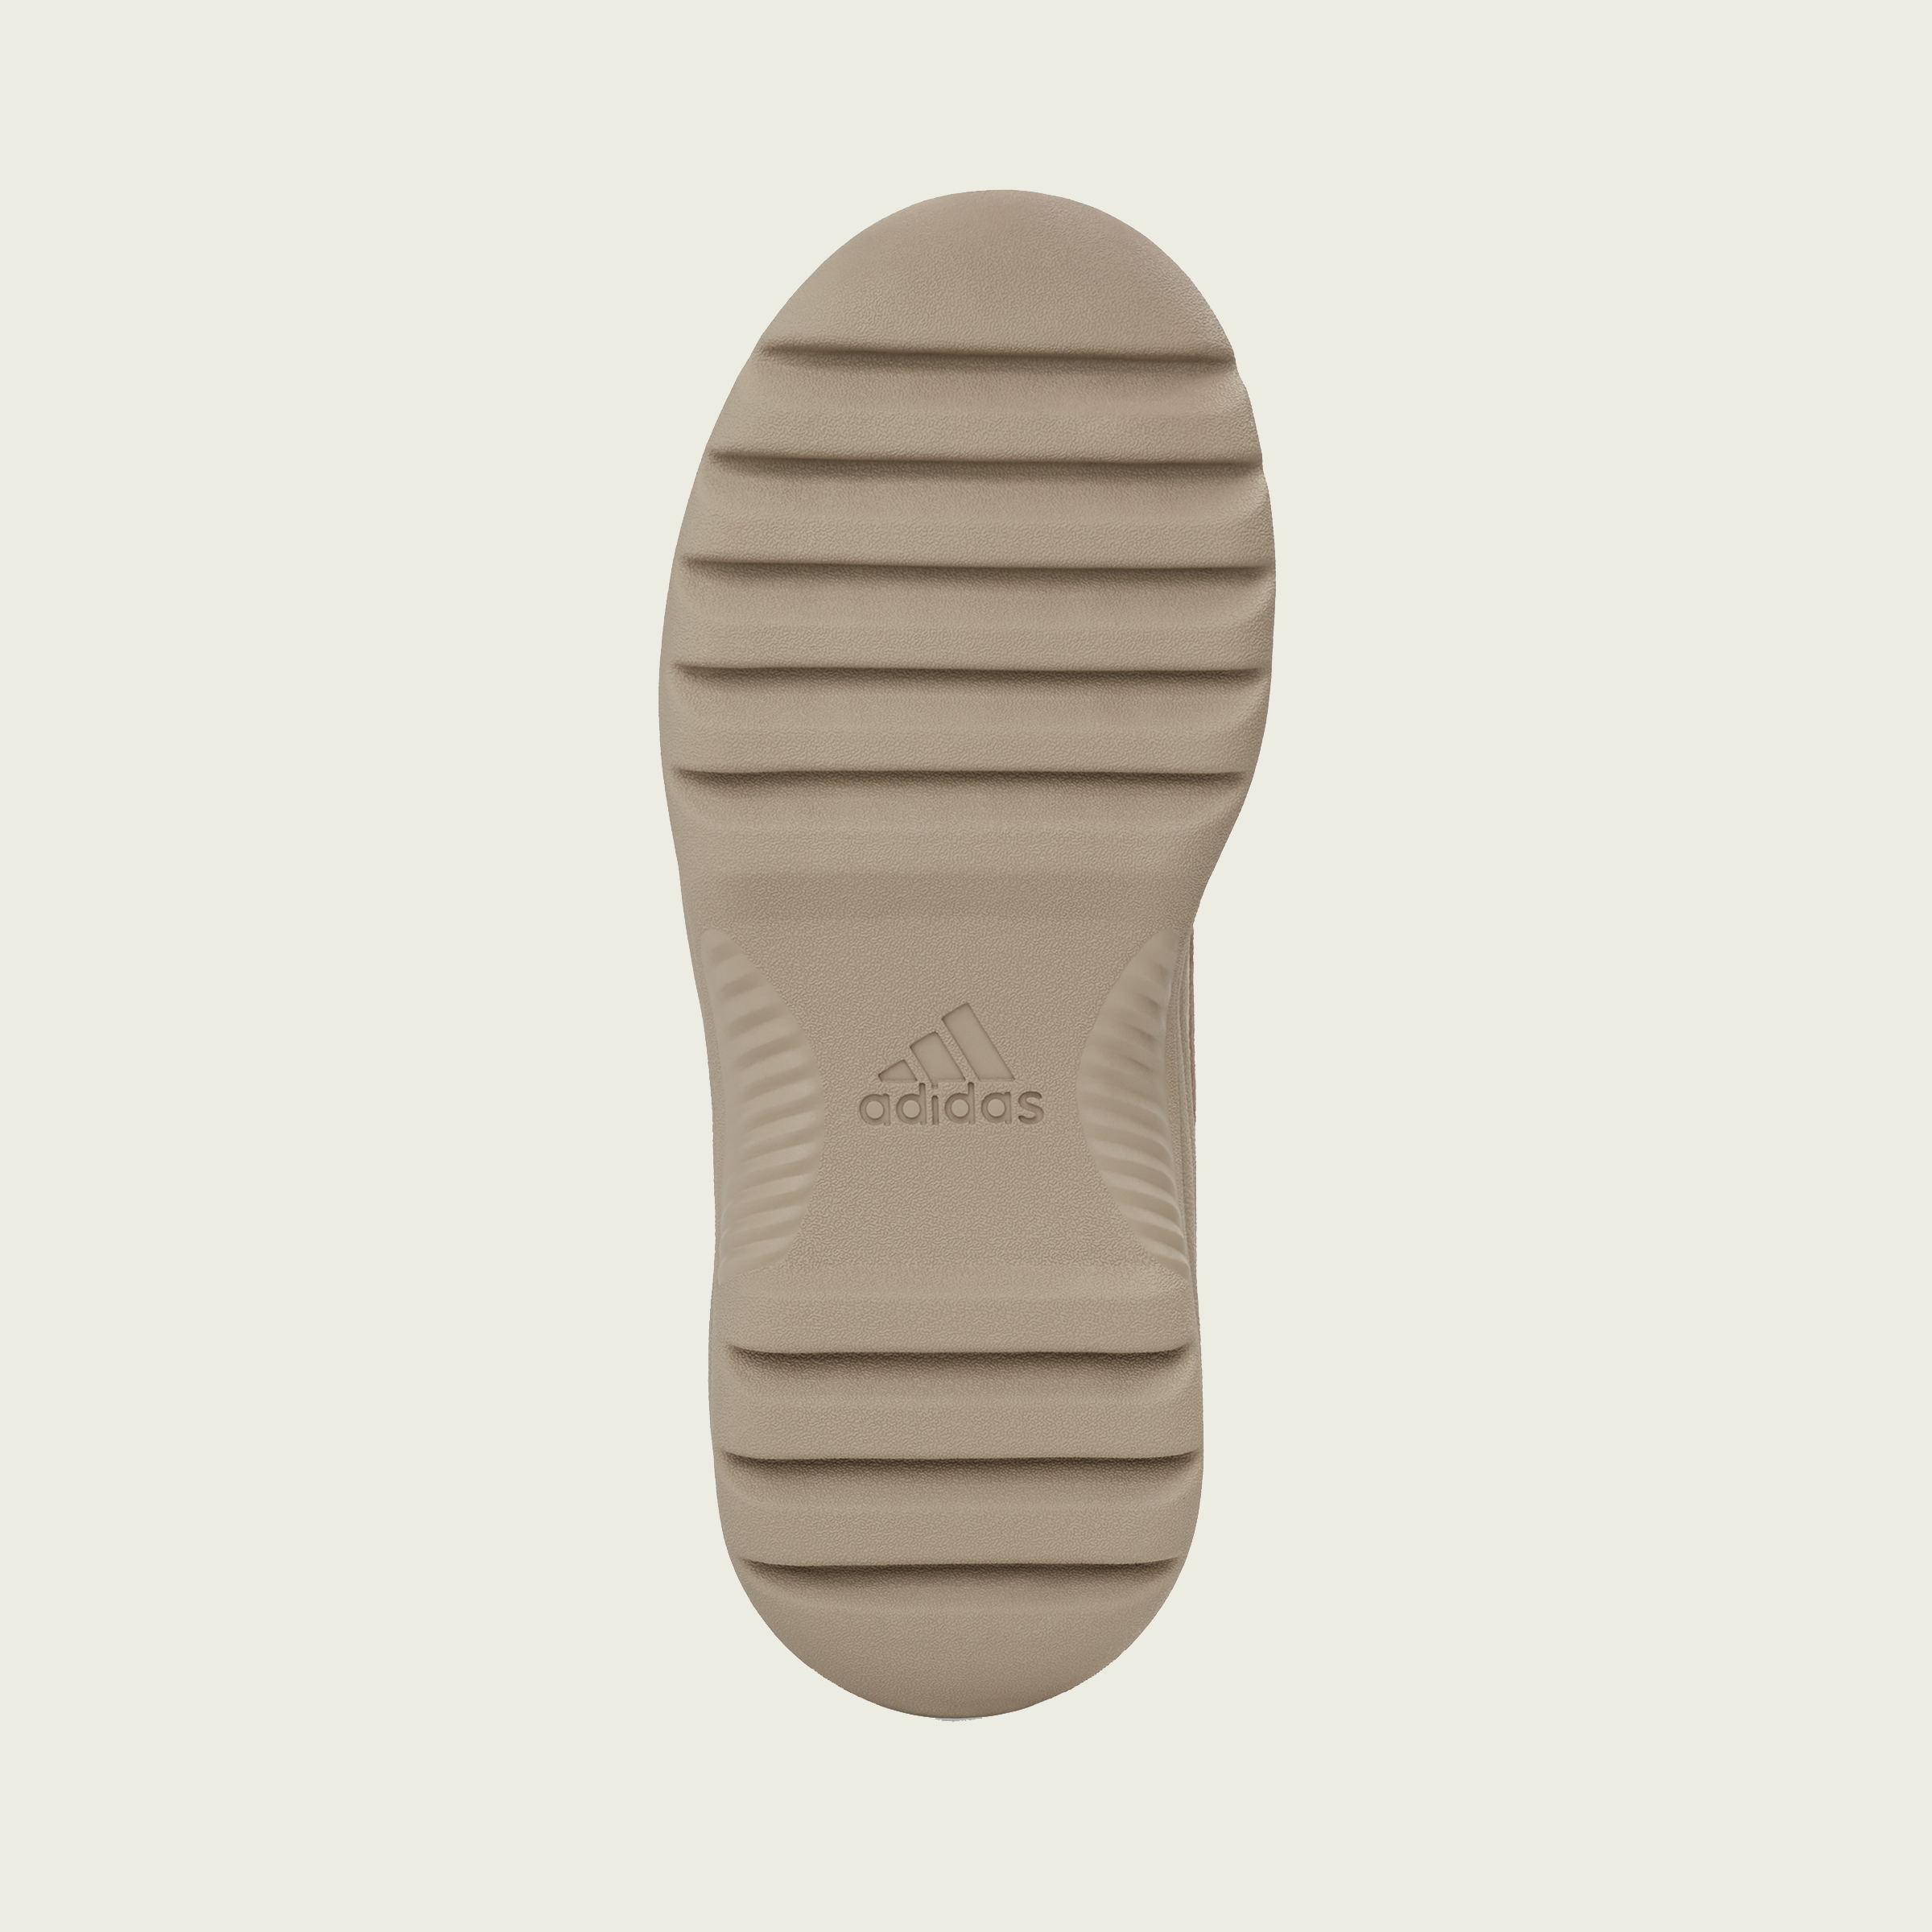 adidas x KANYE WEST Announce The YZY DSRT BT Salt, YZY DSRT BT Rock, And The YZY DSRT BT Oil EG6462 BT AdidasApp